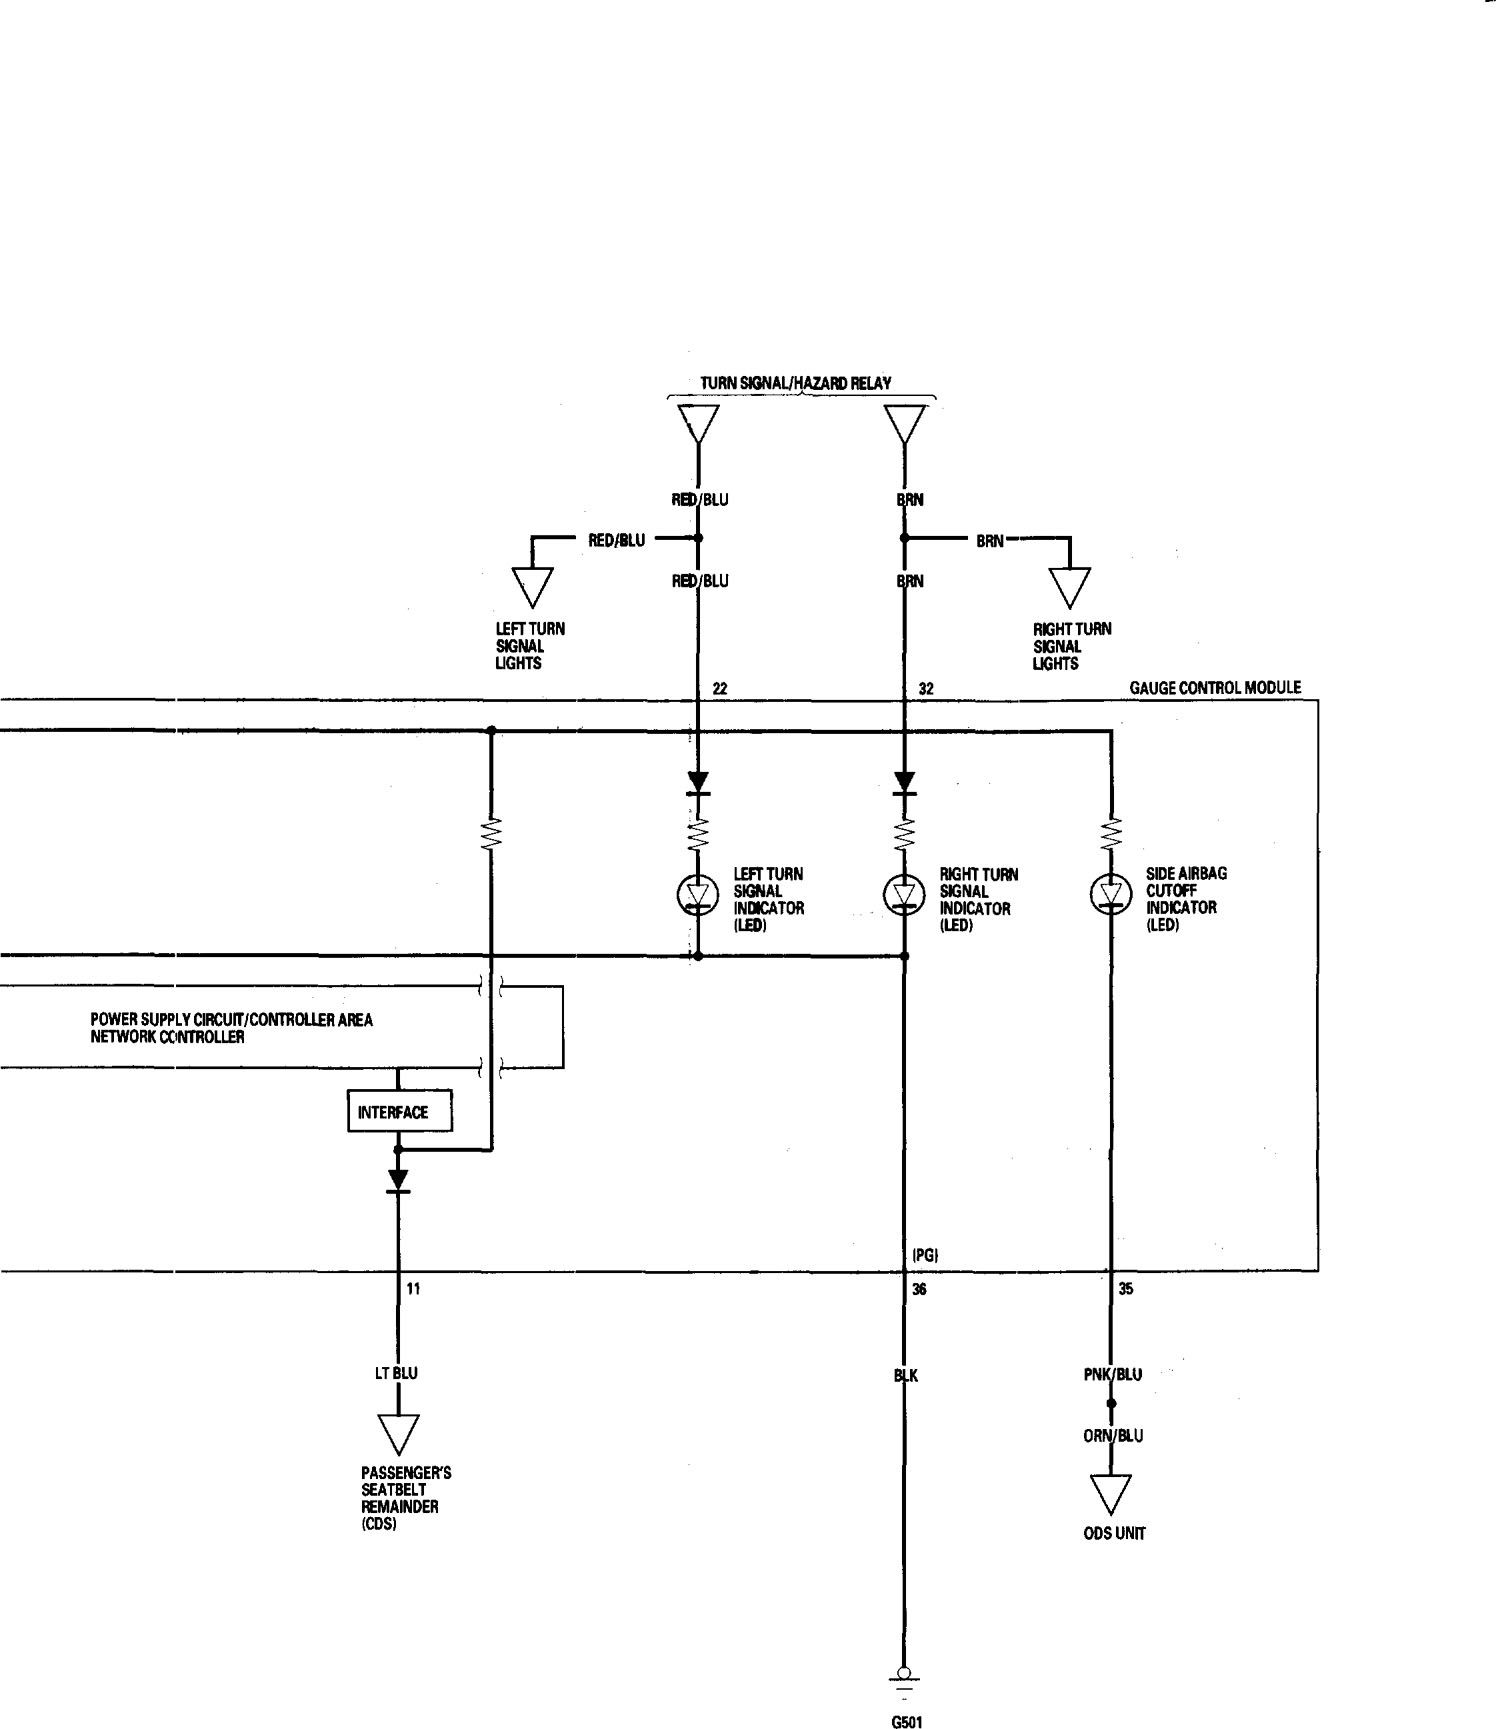 WRG-1374] Honda Accord Turn Signal Wiring Diagram on